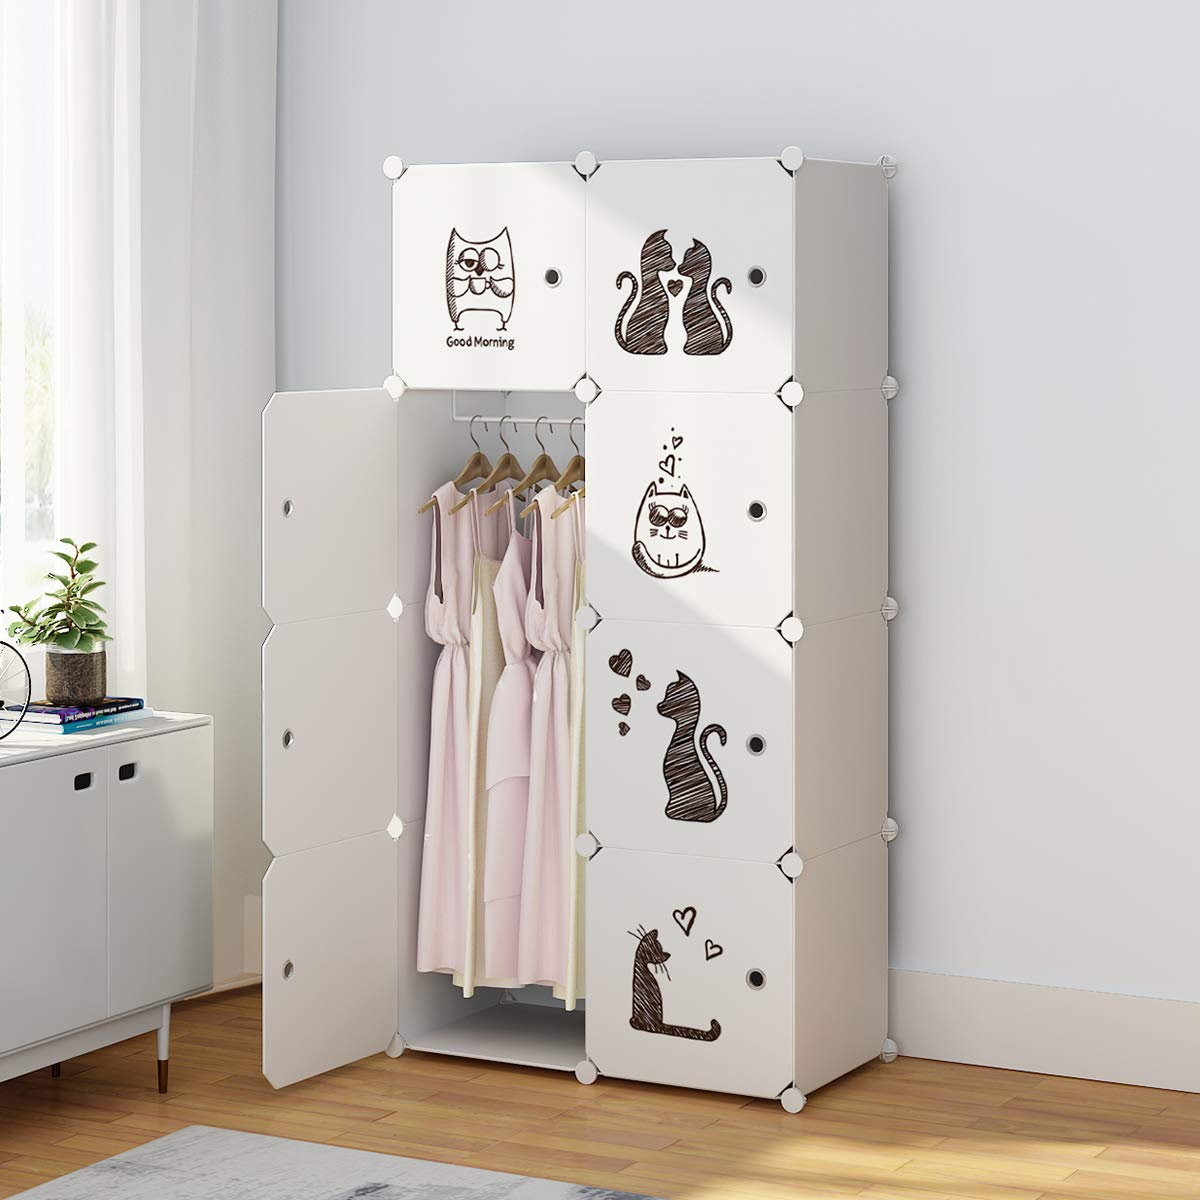 KOUSI Portable Clothes Closet Wardrobe Bedroom Armoire Dresser Cube Storage Organizer, Capacious Customizable-White Cat (5 Cubes 1 Hanging Clothes-FBA) by KOUSI